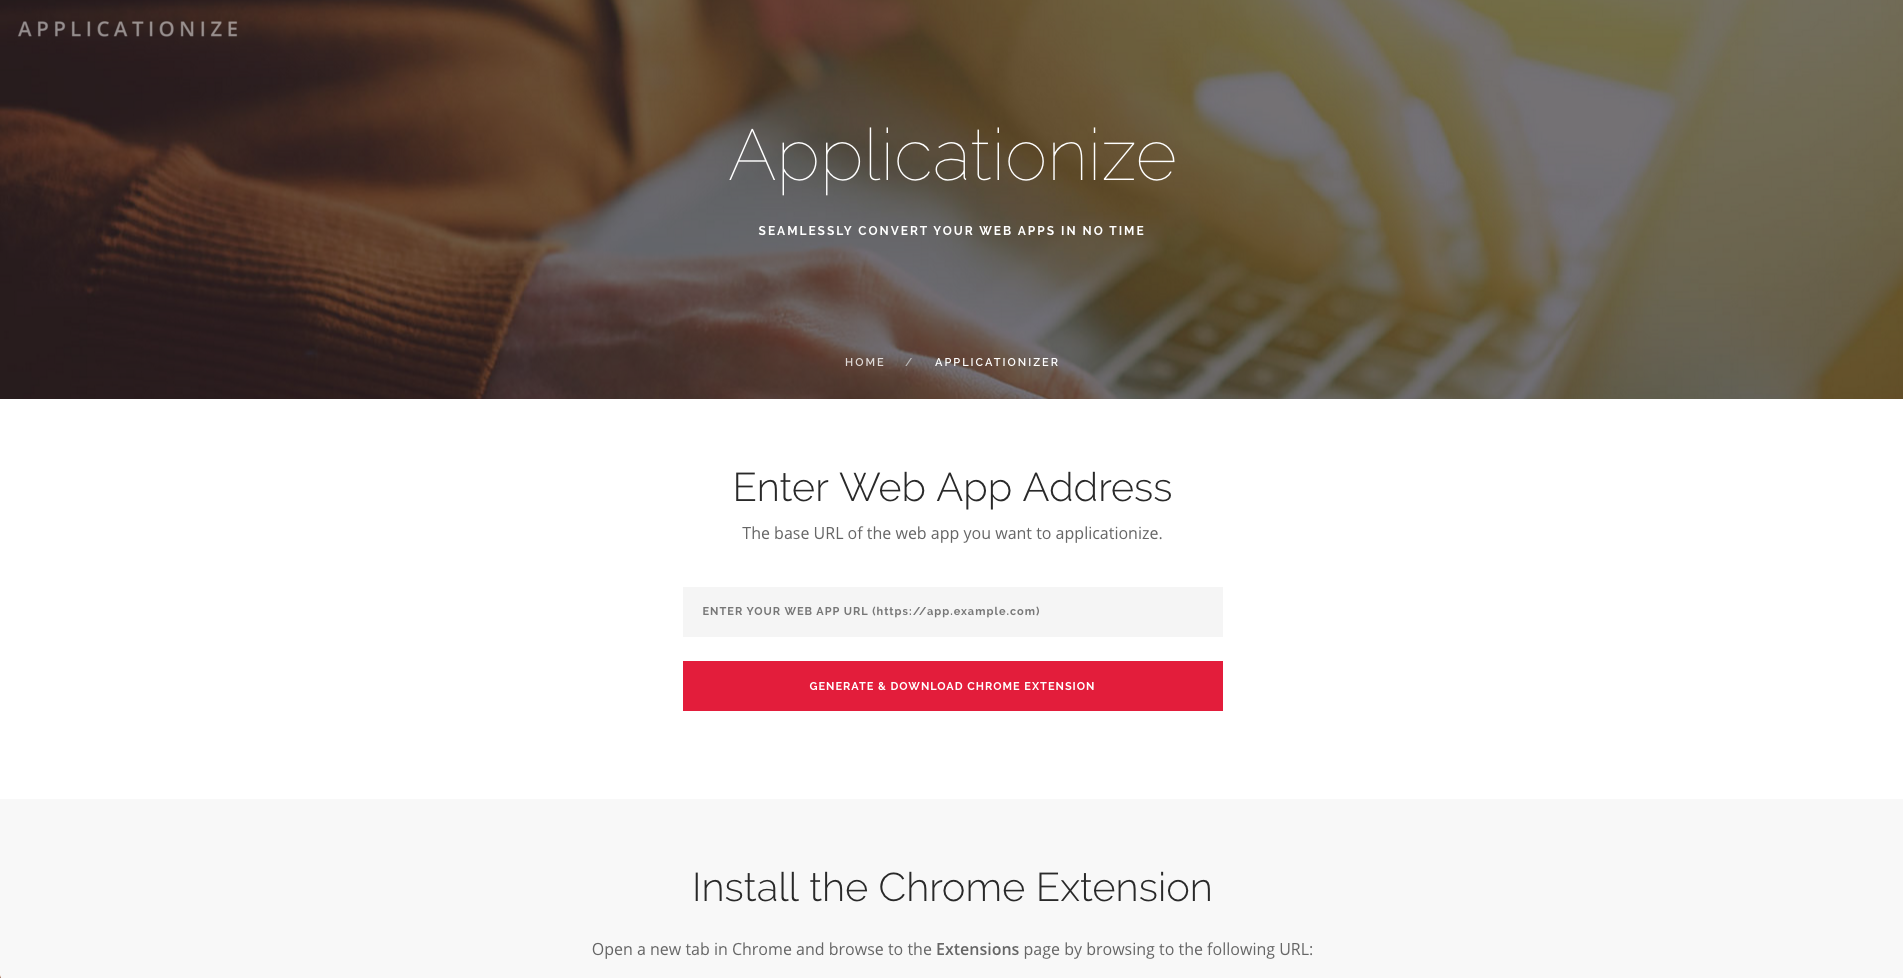 Applicationize